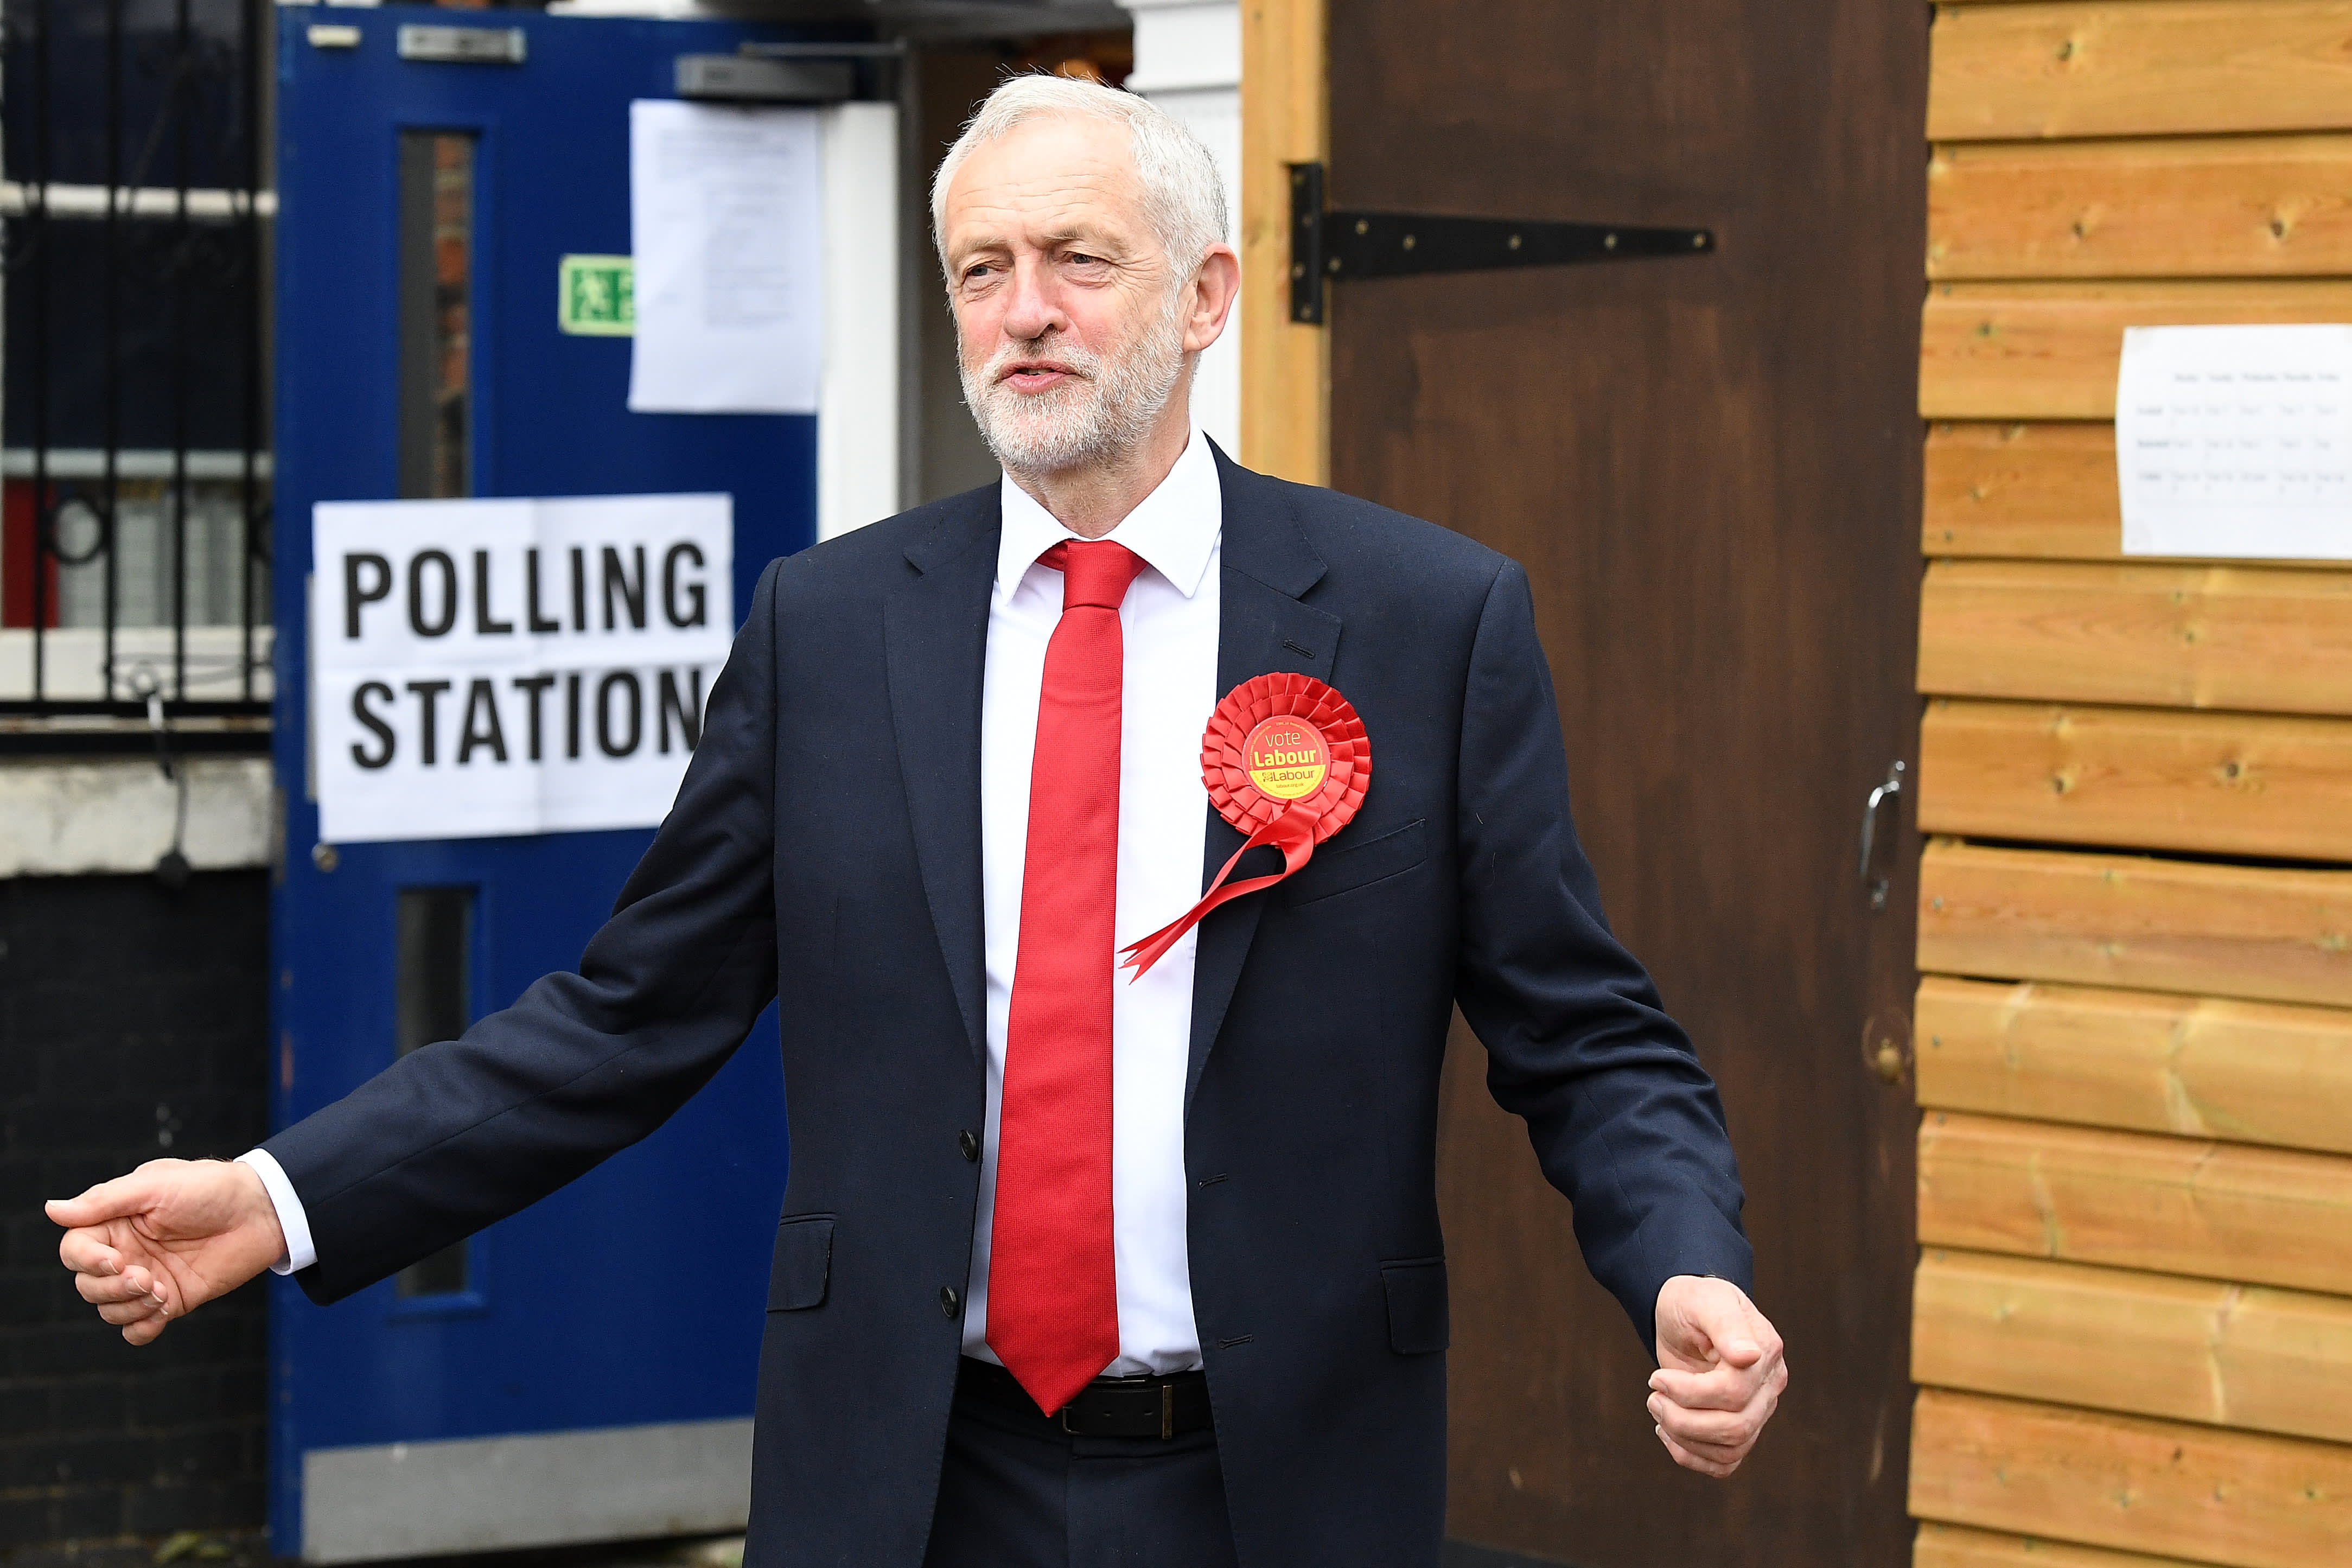 Labour party leader Jeremy Corbyn casts his vote at a polling station at Pakeman Primary School on June 8, 2017 in London, England.